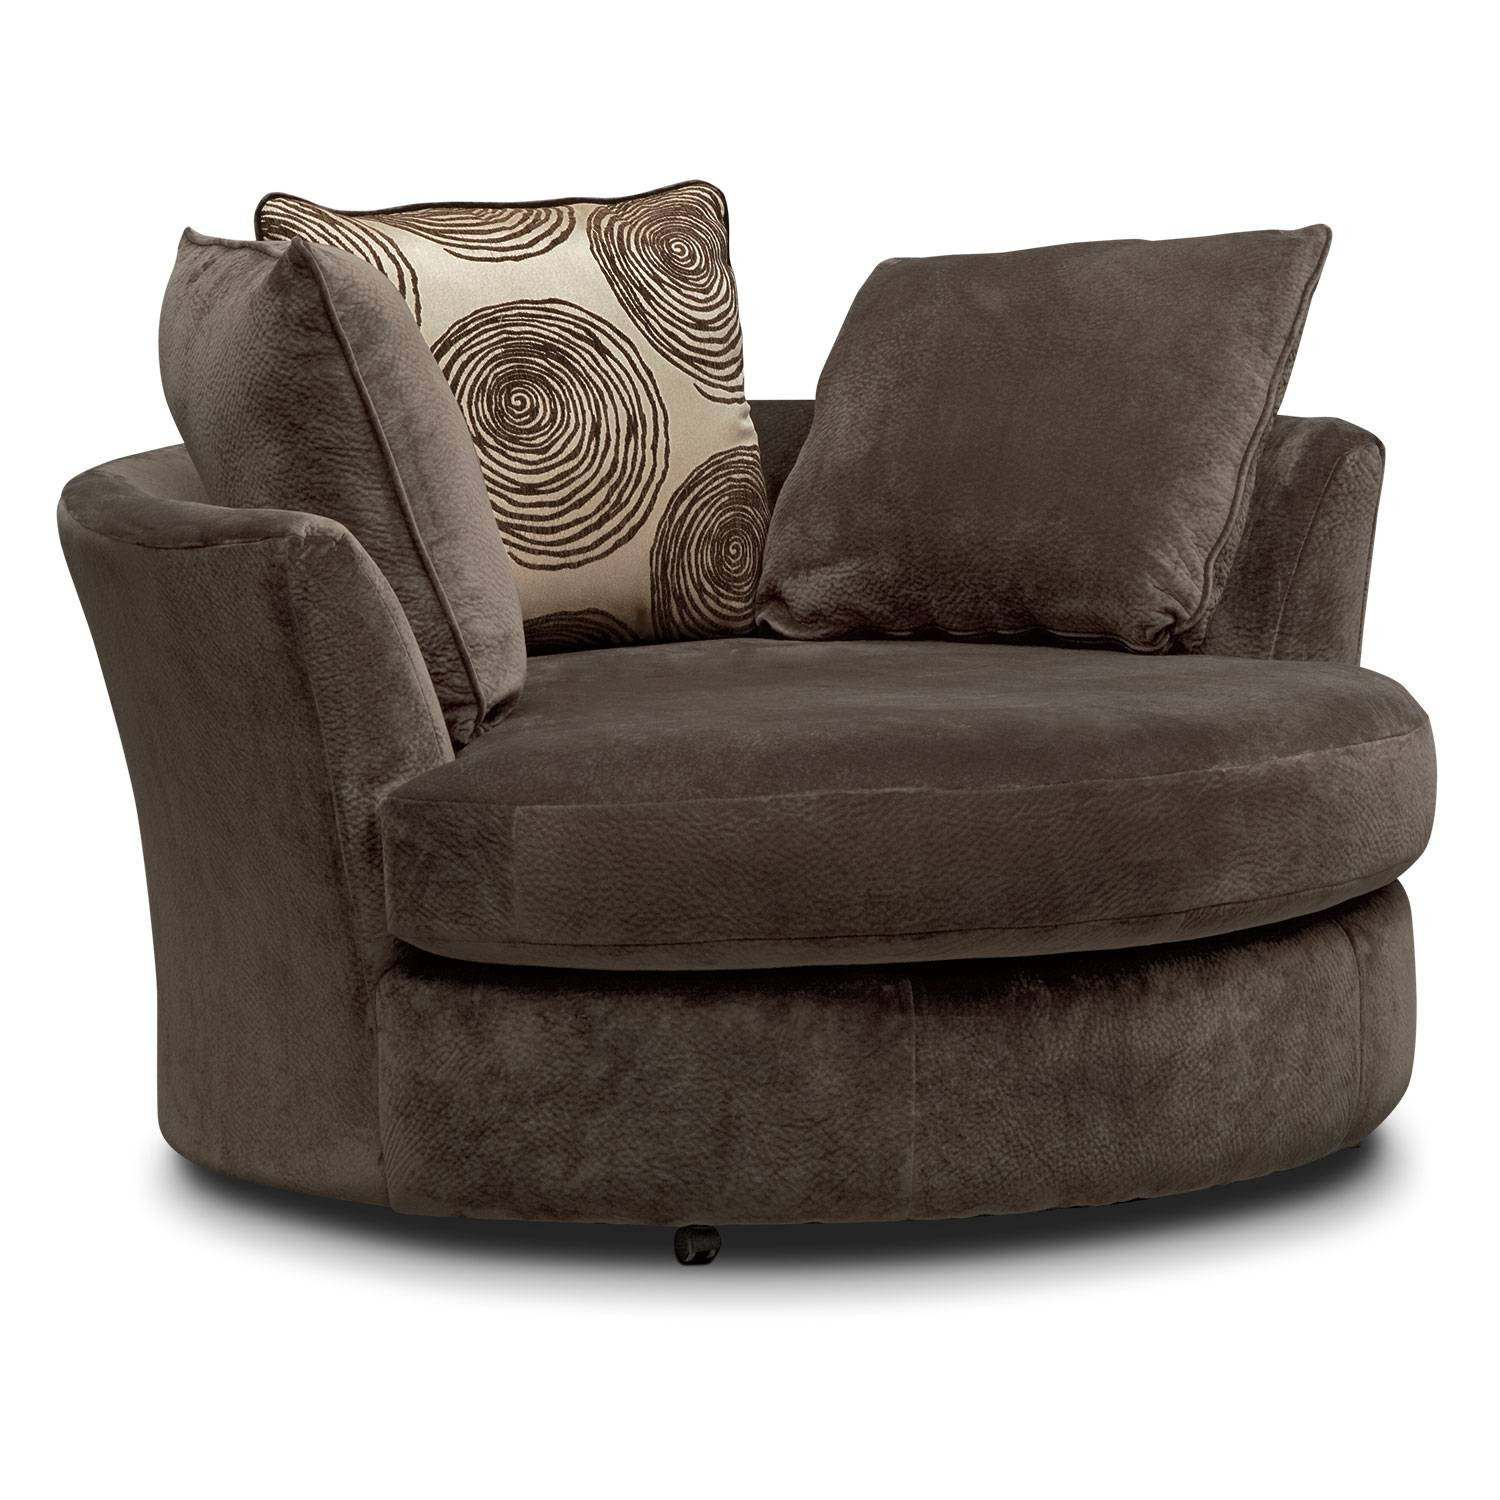 Cordelle Sofa And Swivel Chair Set - Chocolate | Value City Furniture within Corner Sofa And Swivel Chairs (Image 8 of 30)